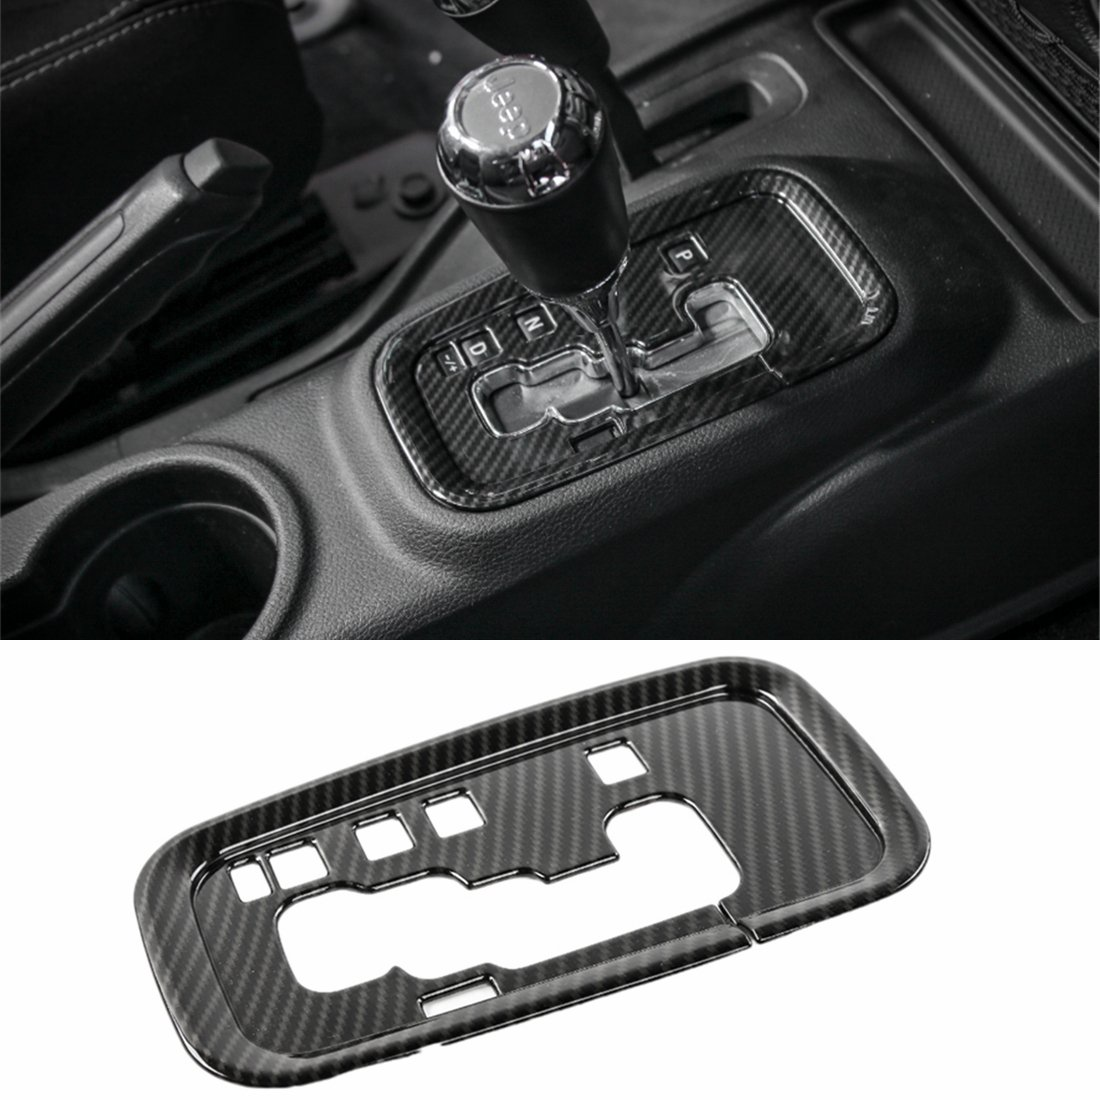 YOCTM for Jeep Wrangler 2011 2012 2013 2014 2015 2016 2017 Accessories Gear Shift Plate Shifter Transfer Full Cover Decoration Interior Trims Carbon Fiber Look JK JKU Rubicon Sahara ABS Car Styling